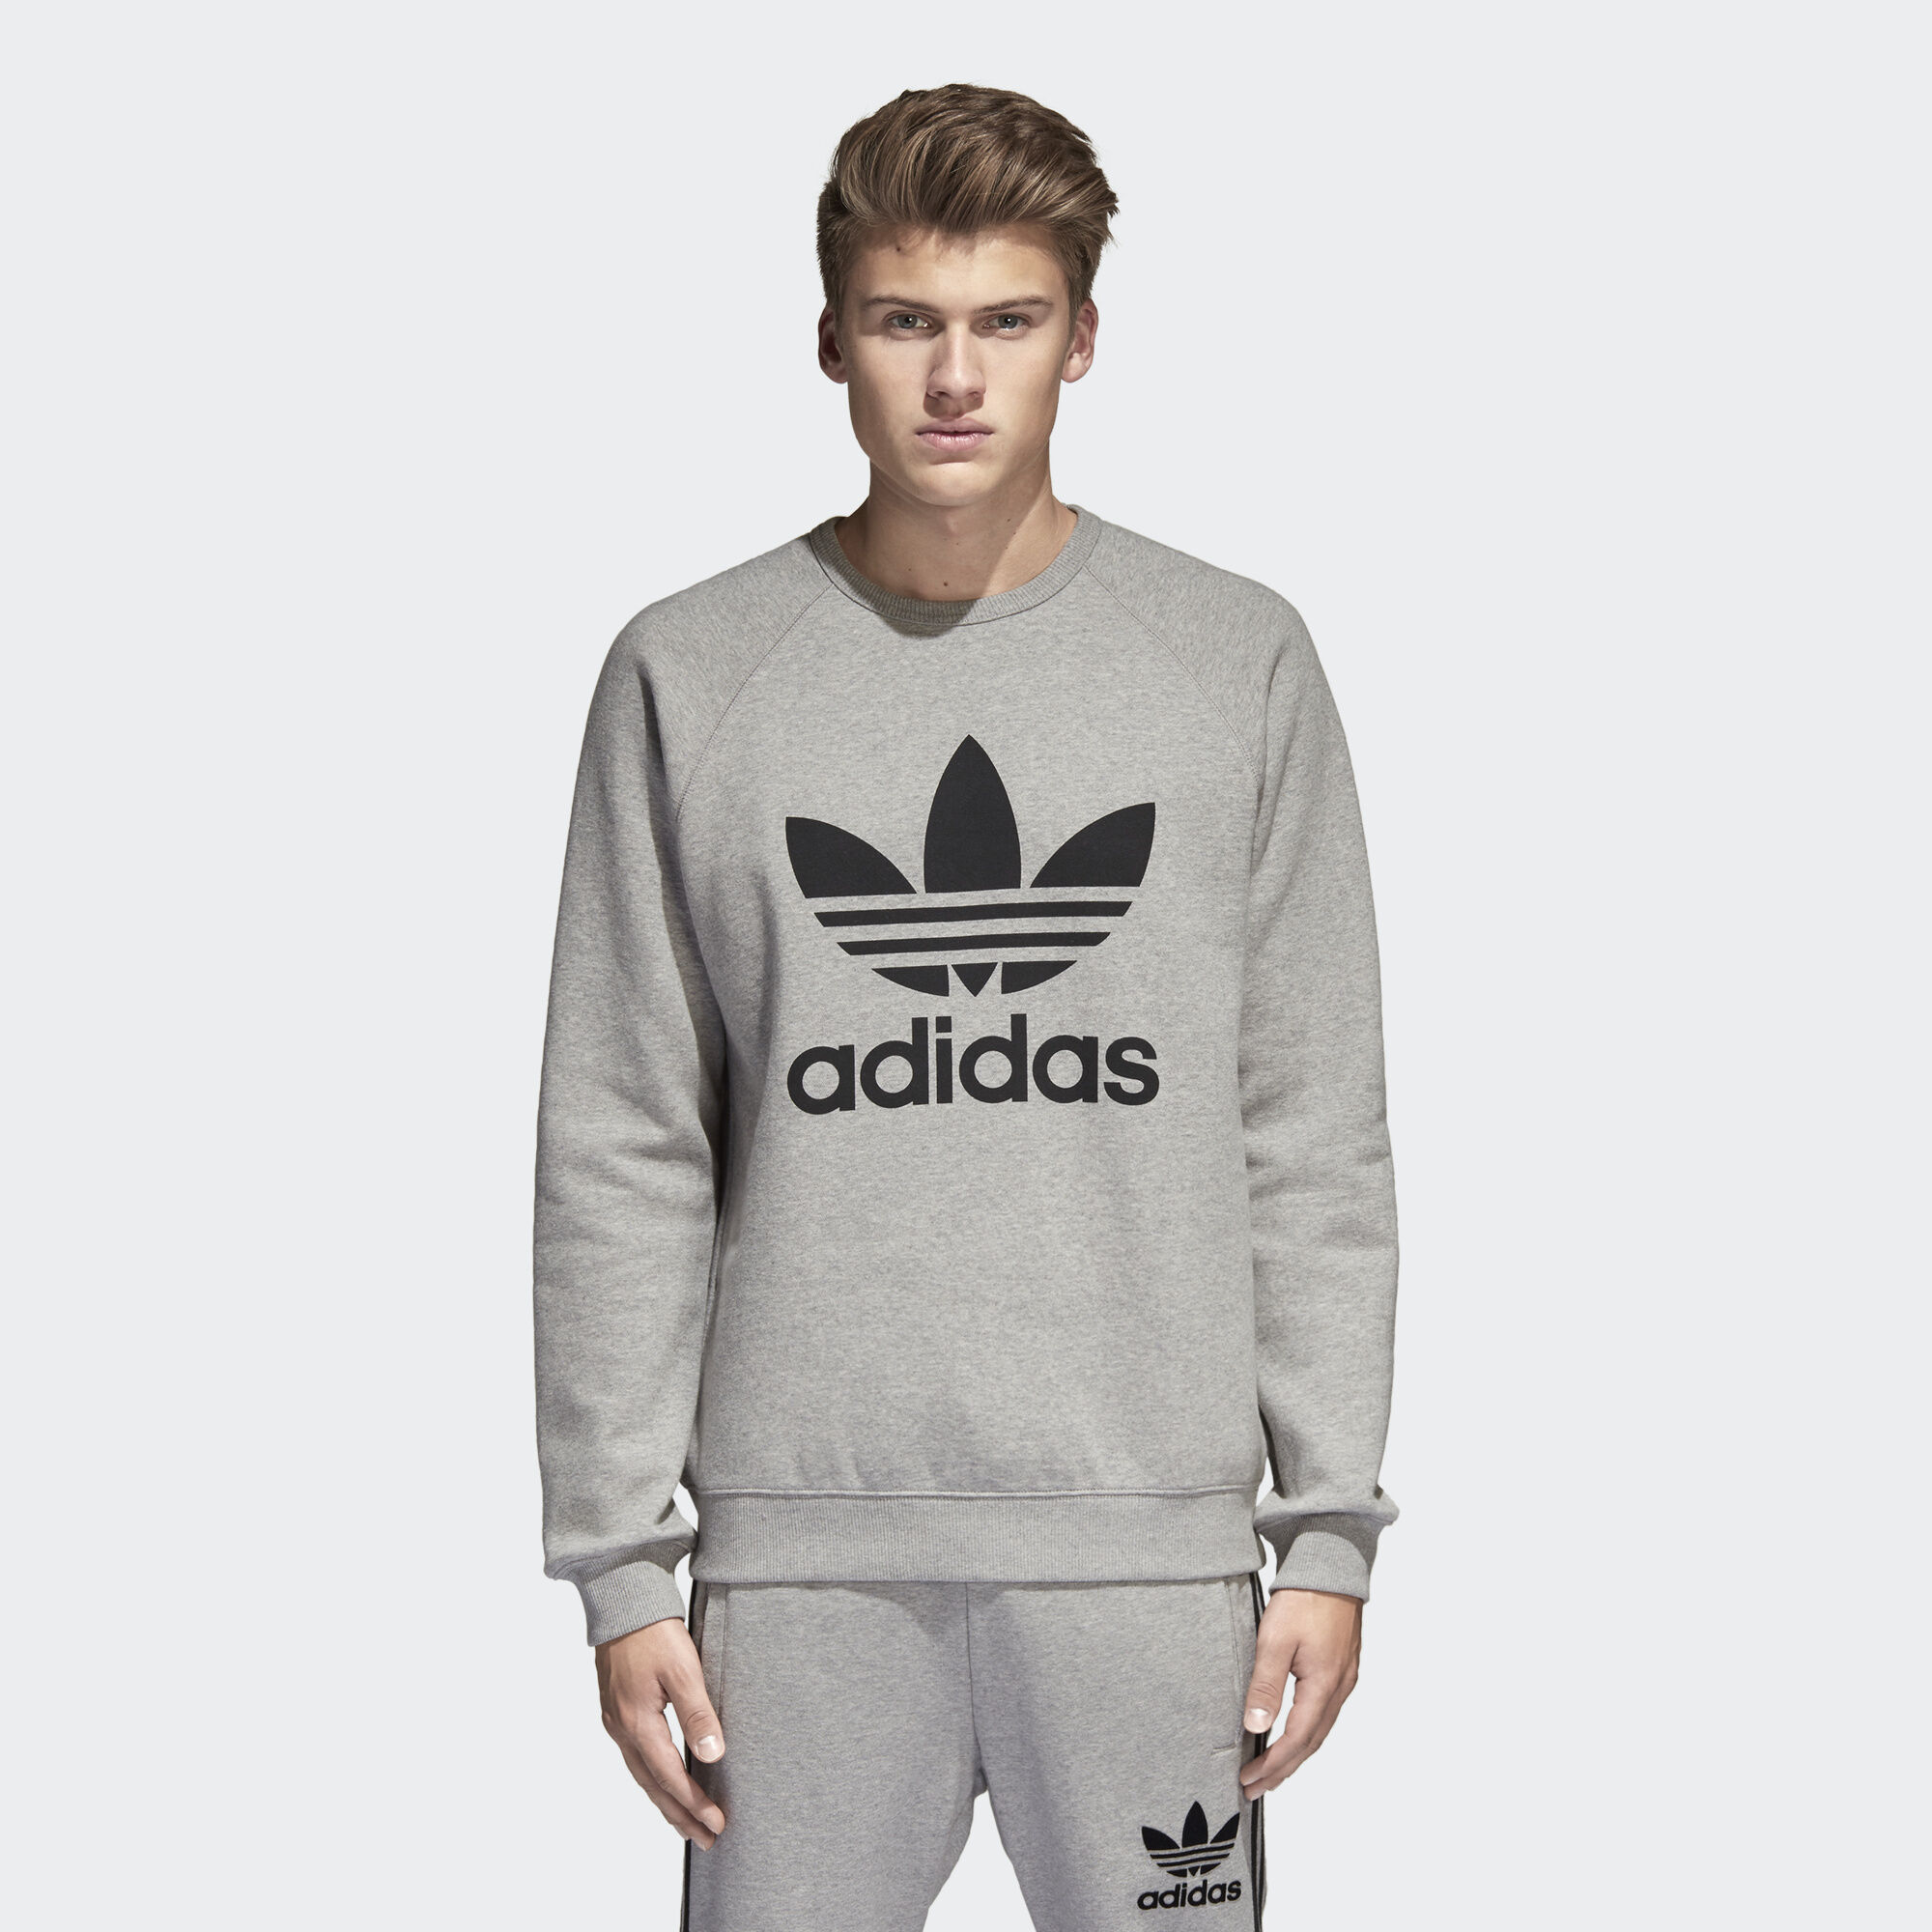 50548373f704 Buy adidas sweatsuit mens Grey   OFF41% Discounted